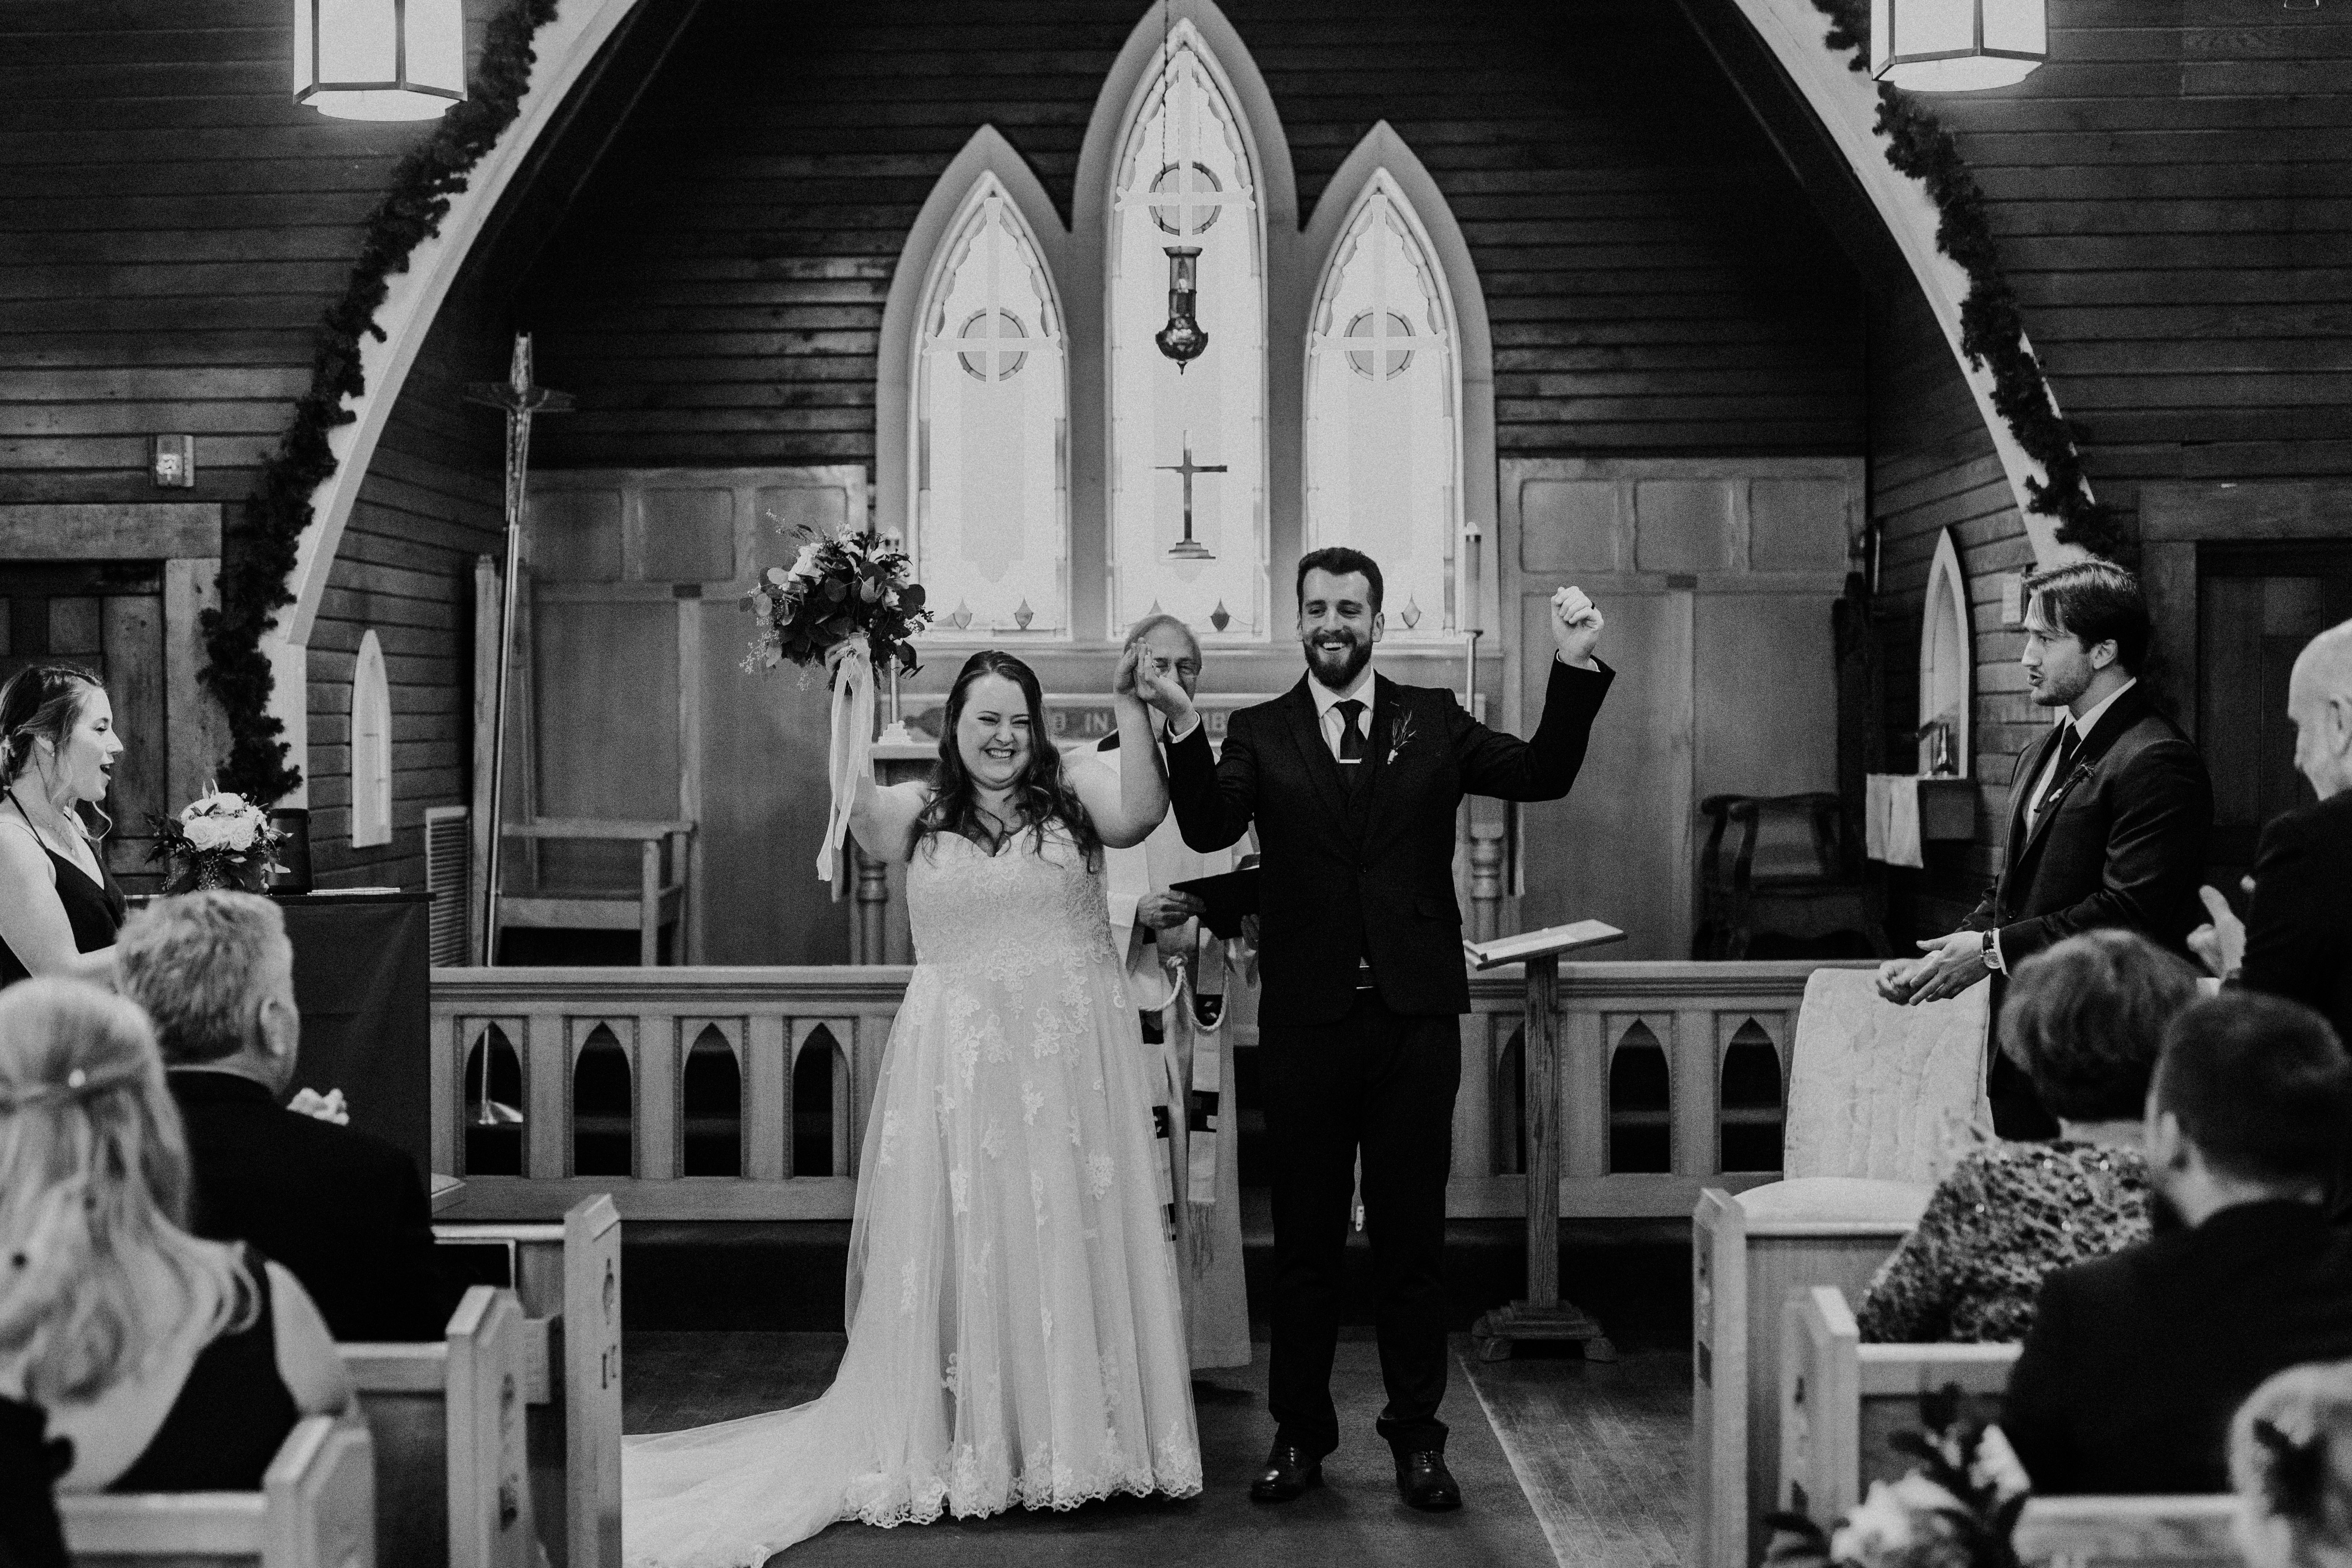 Banff Wedding - newlyweds